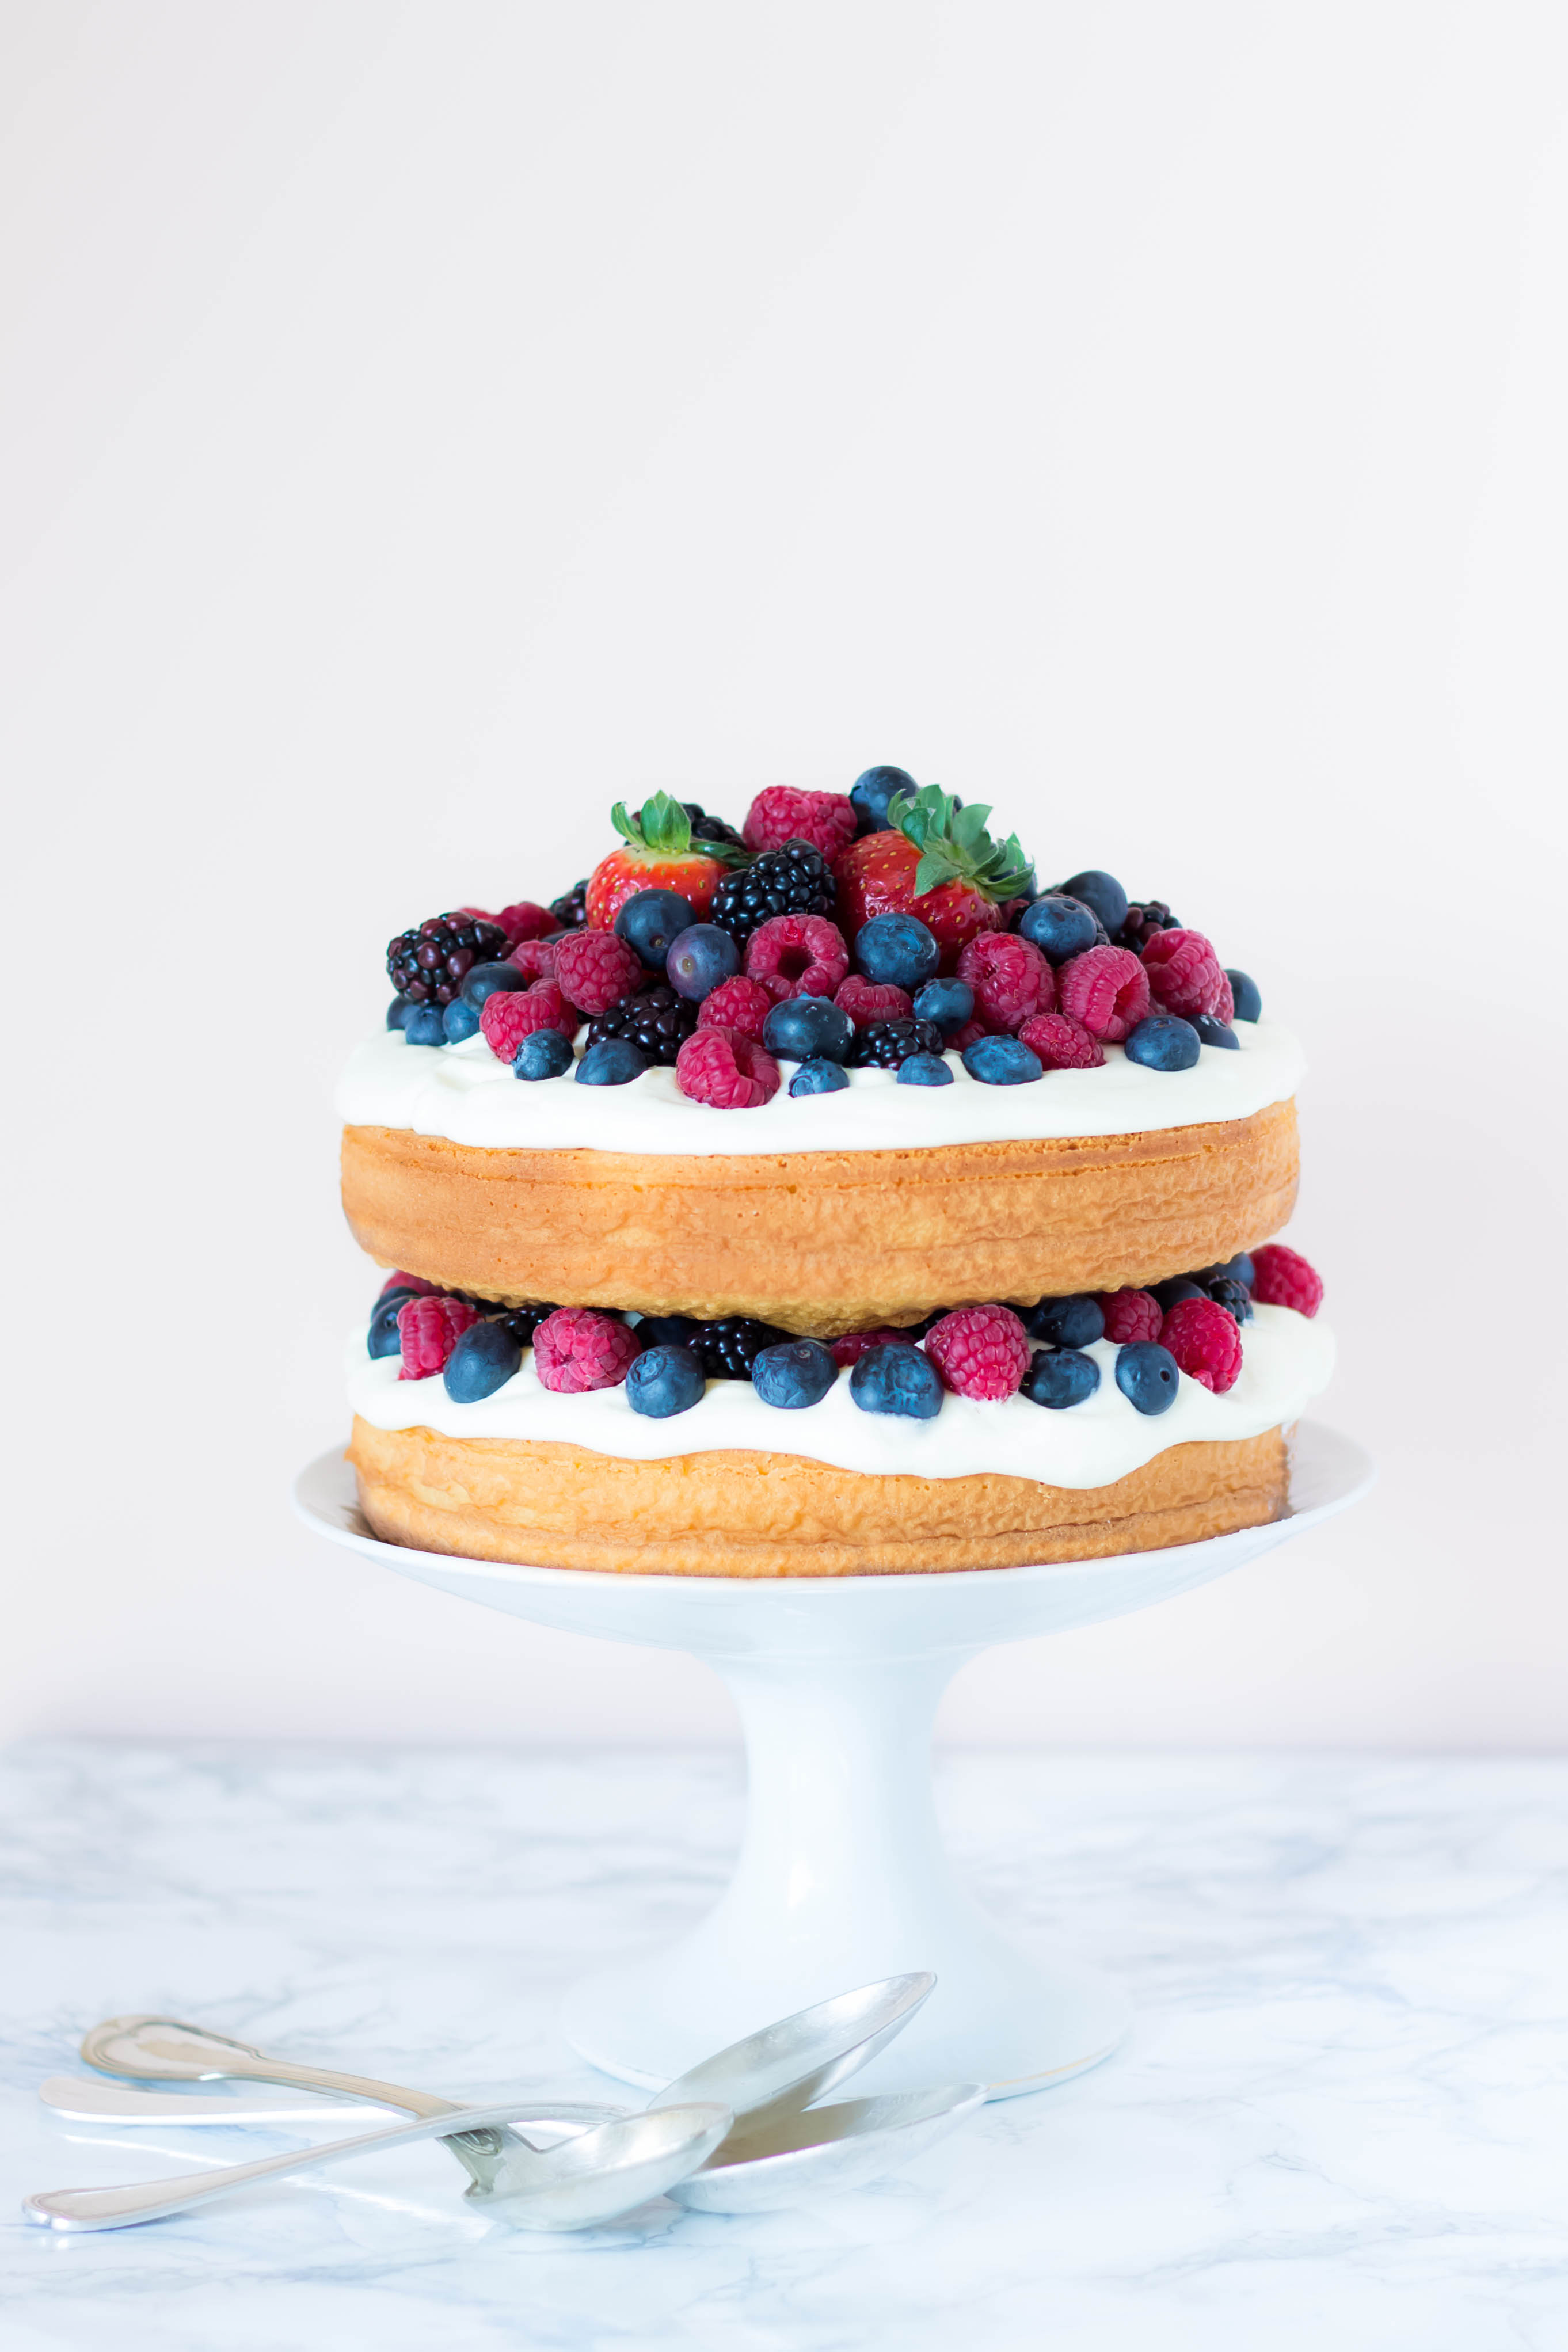 Mascarpone Berries Layer Cake